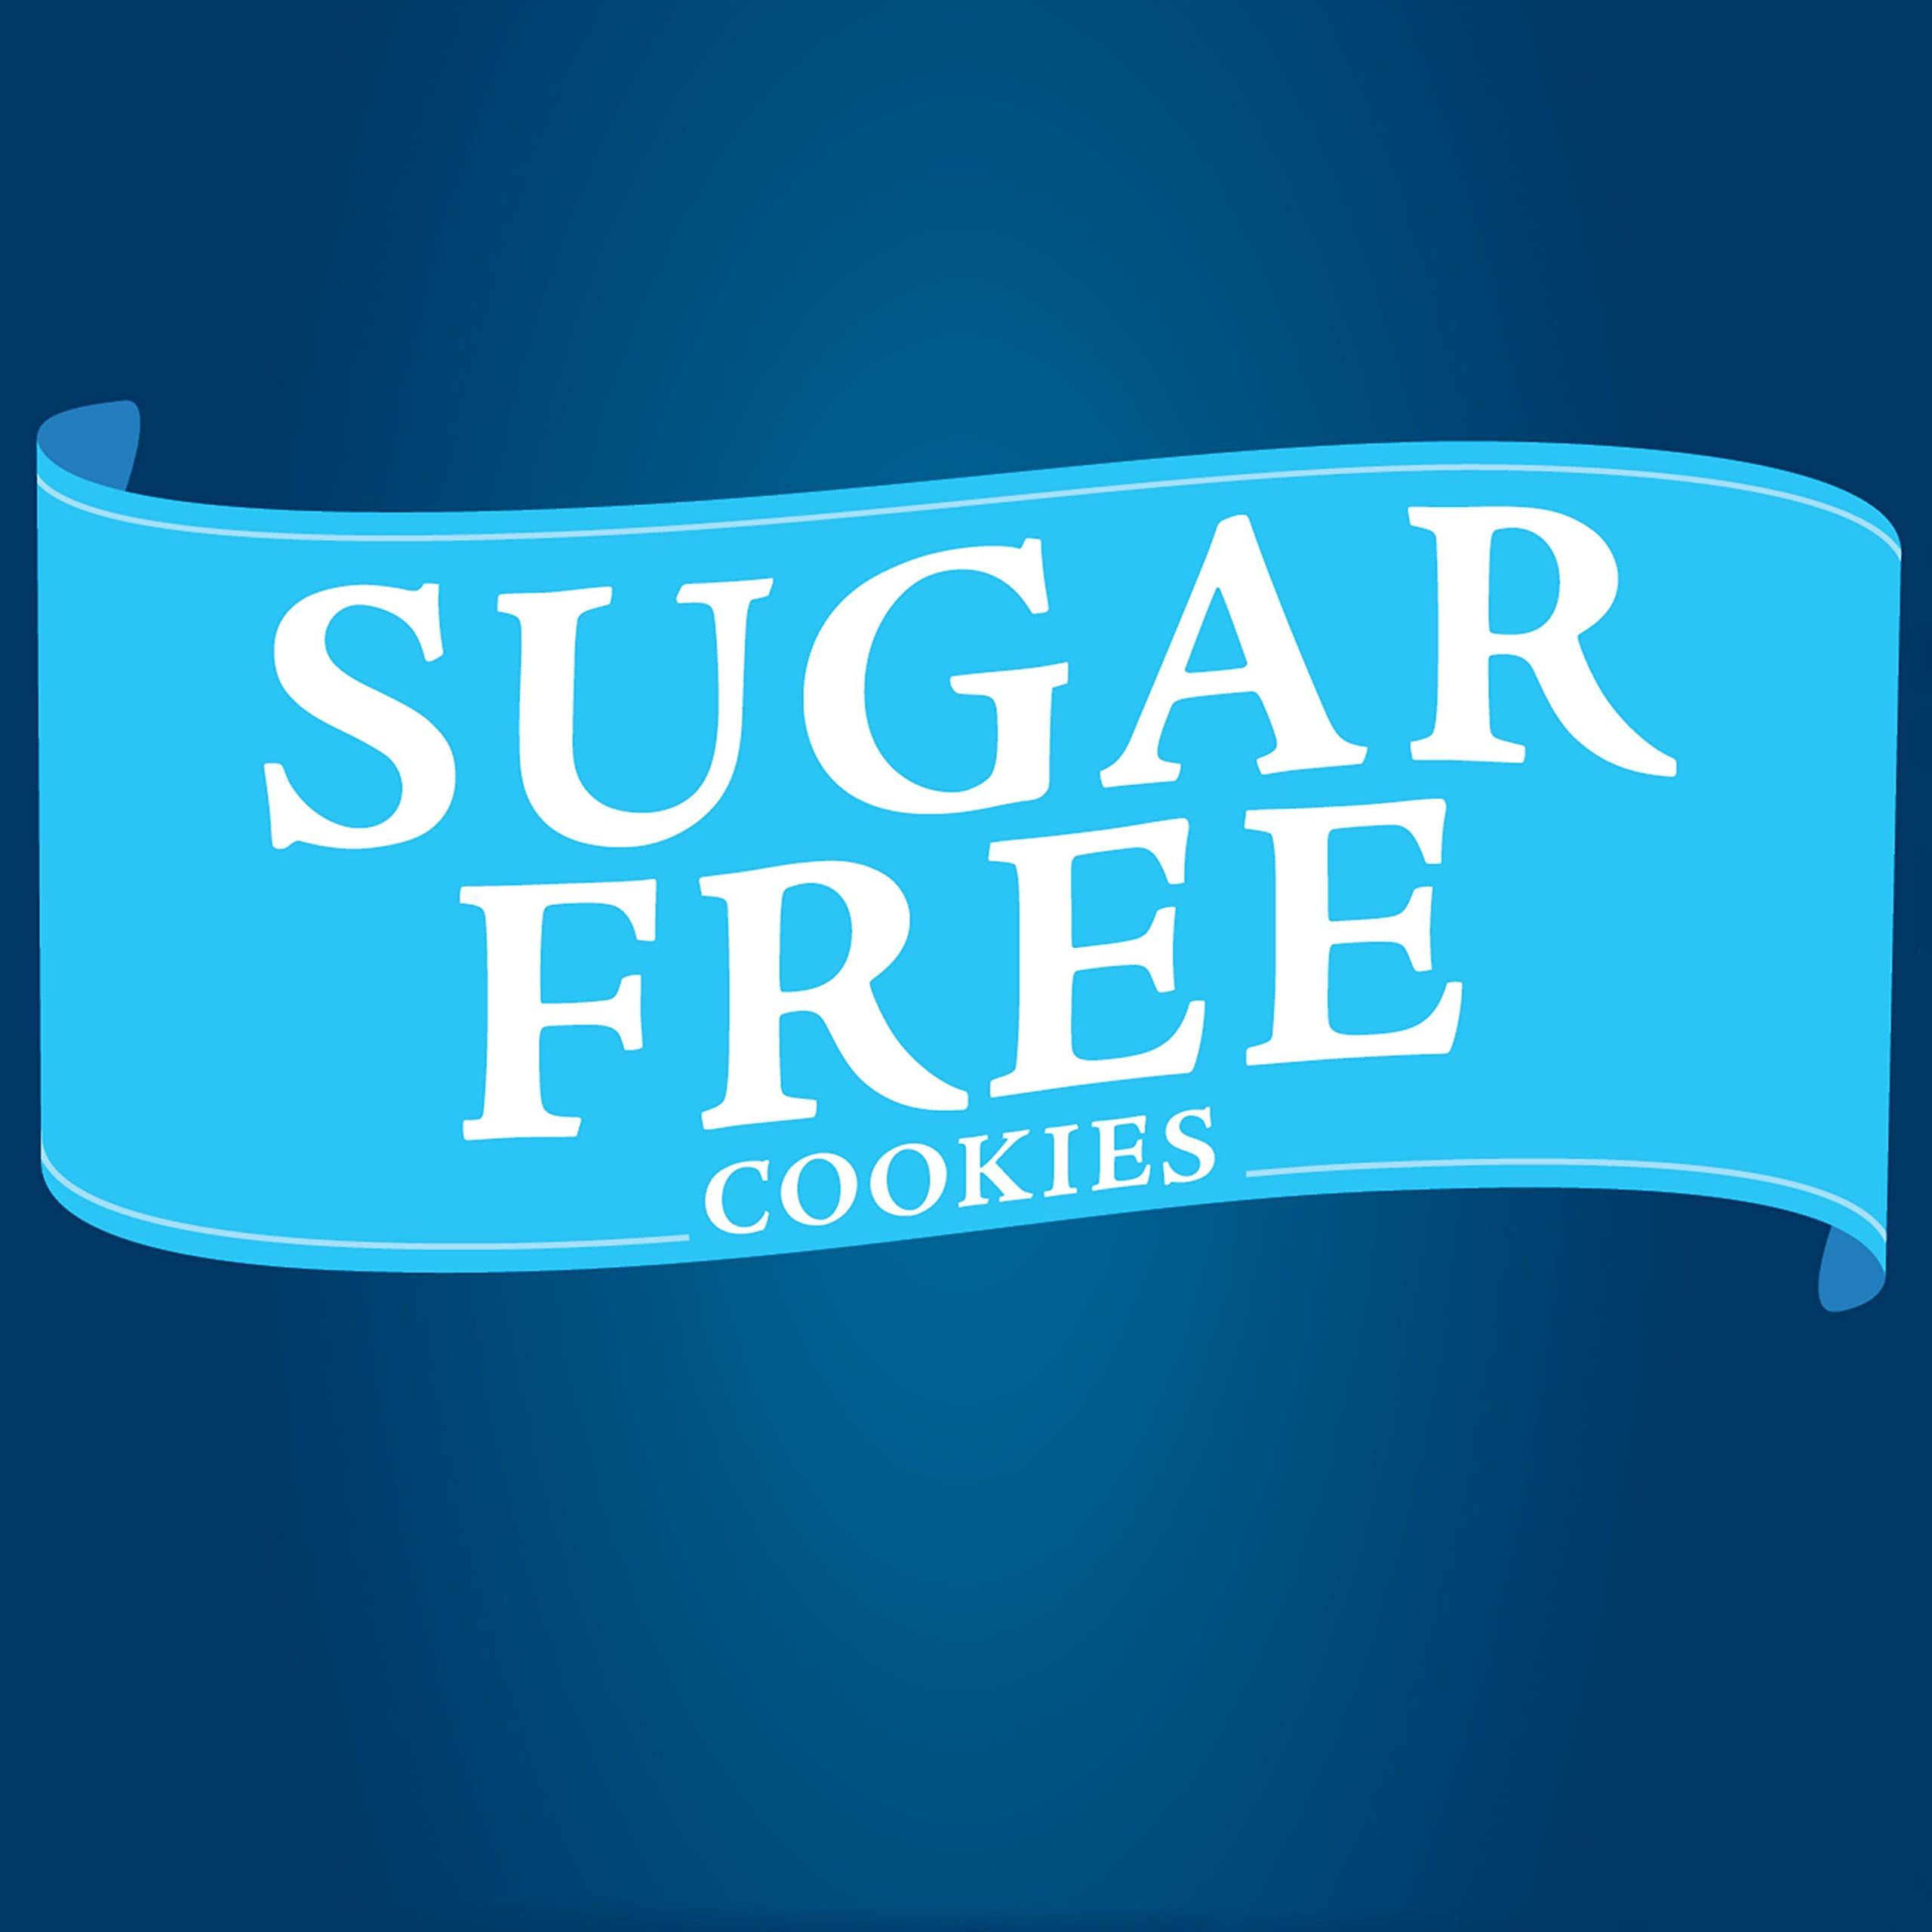 Murray Sugar Free Cookies, Shortbread, 7.7 oz Tray(Pack of 12) by Murray (Image #5)